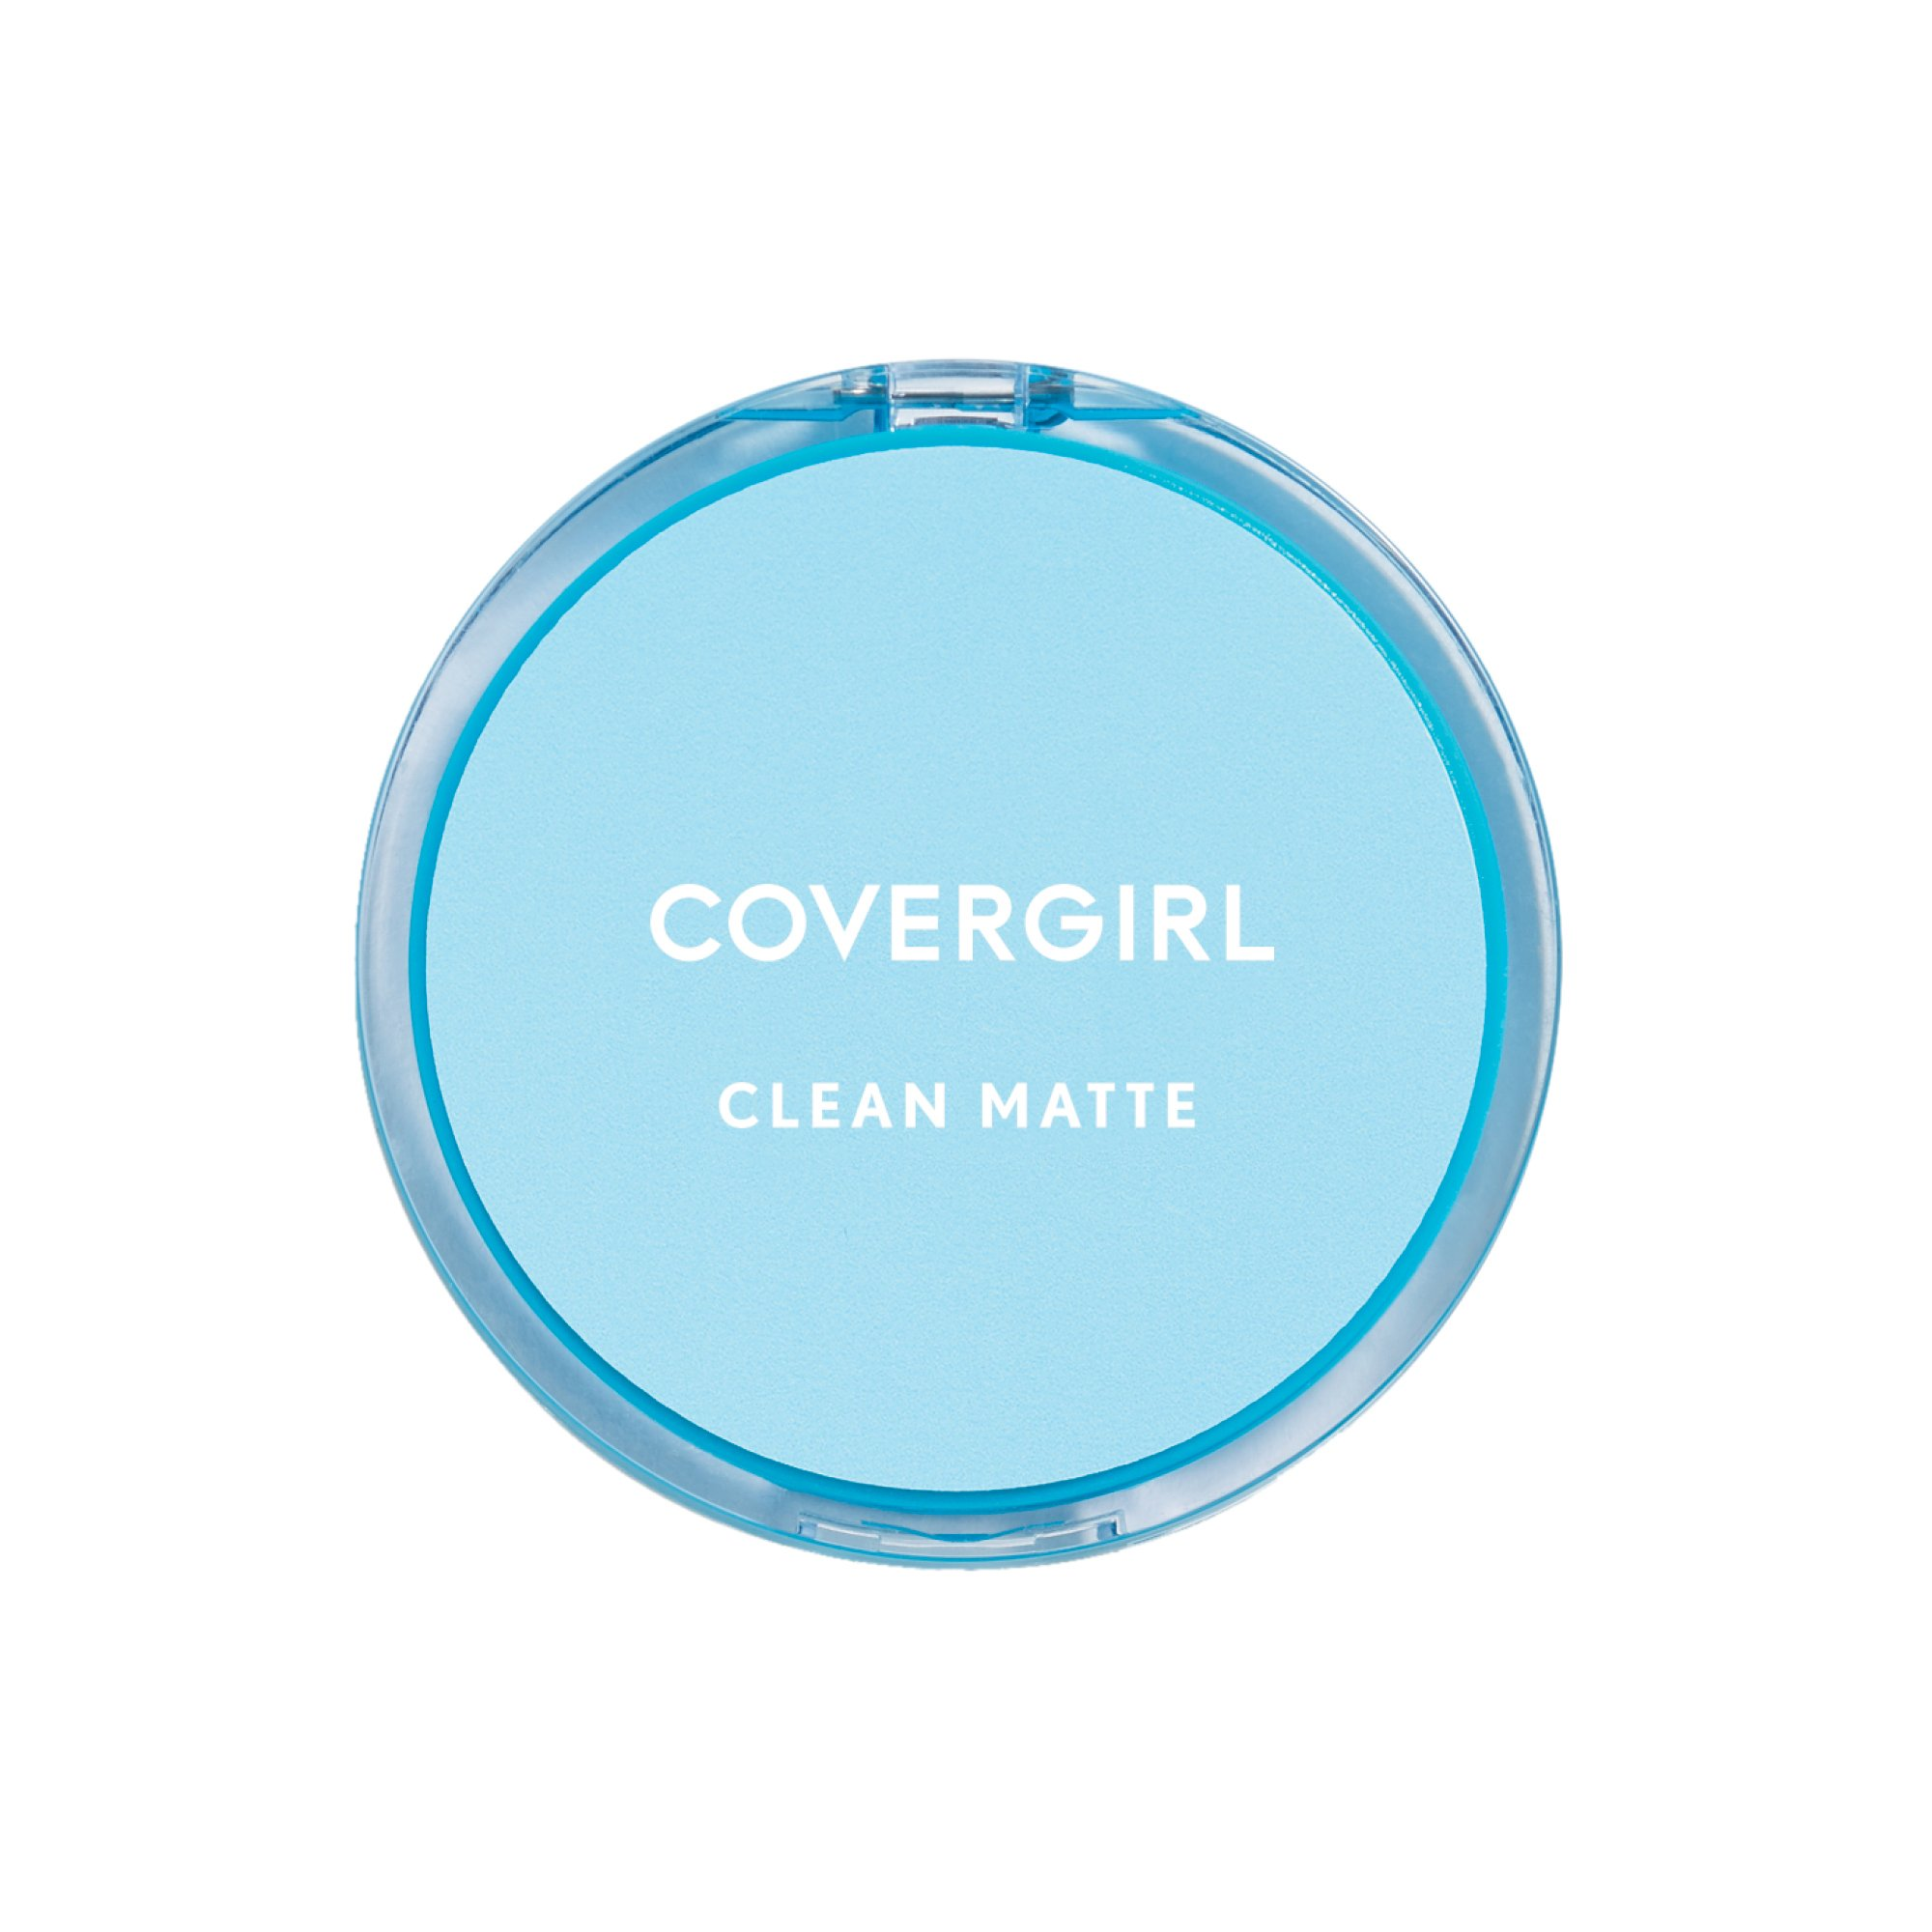 COVERGIRL Clean Matte Pressed Powder, 1 Container (0.35 oz), Classic Ivory Warm Tone, Oil Control Face Powder, Fragrance Free (packaging may vary)